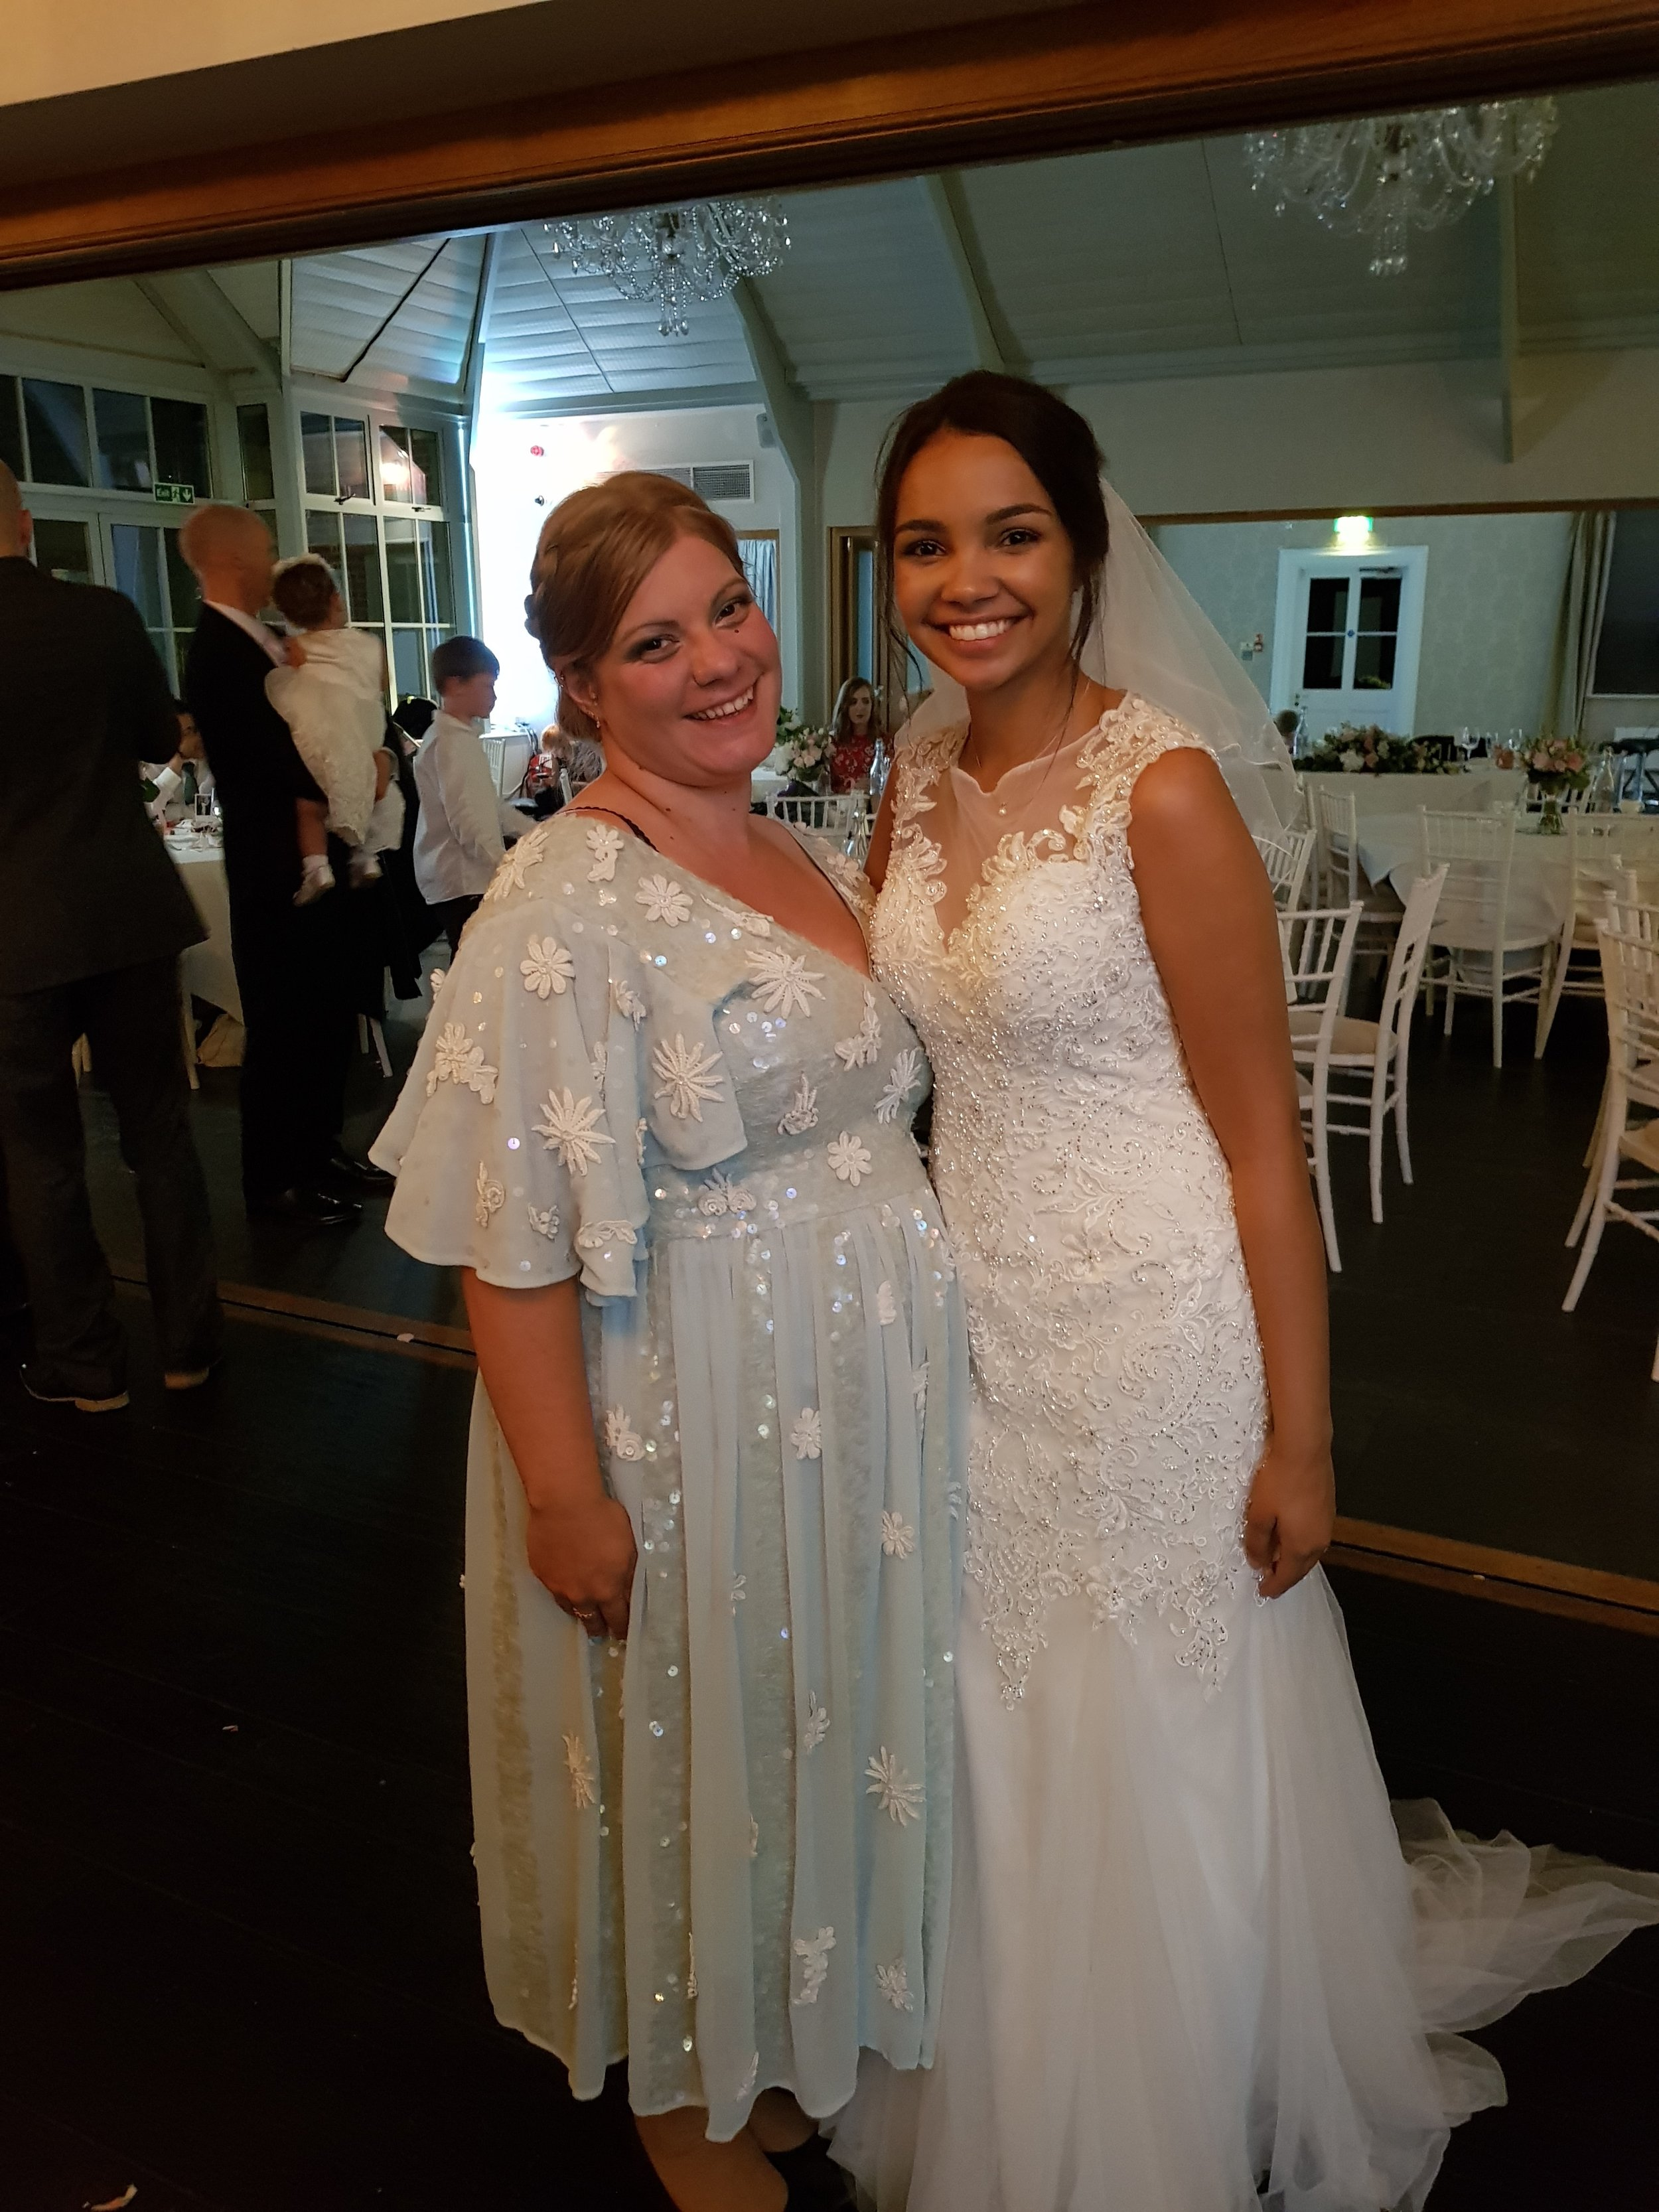 With the gorgeous bride in my SENCHAEmbellished Midi Dress from ELVI